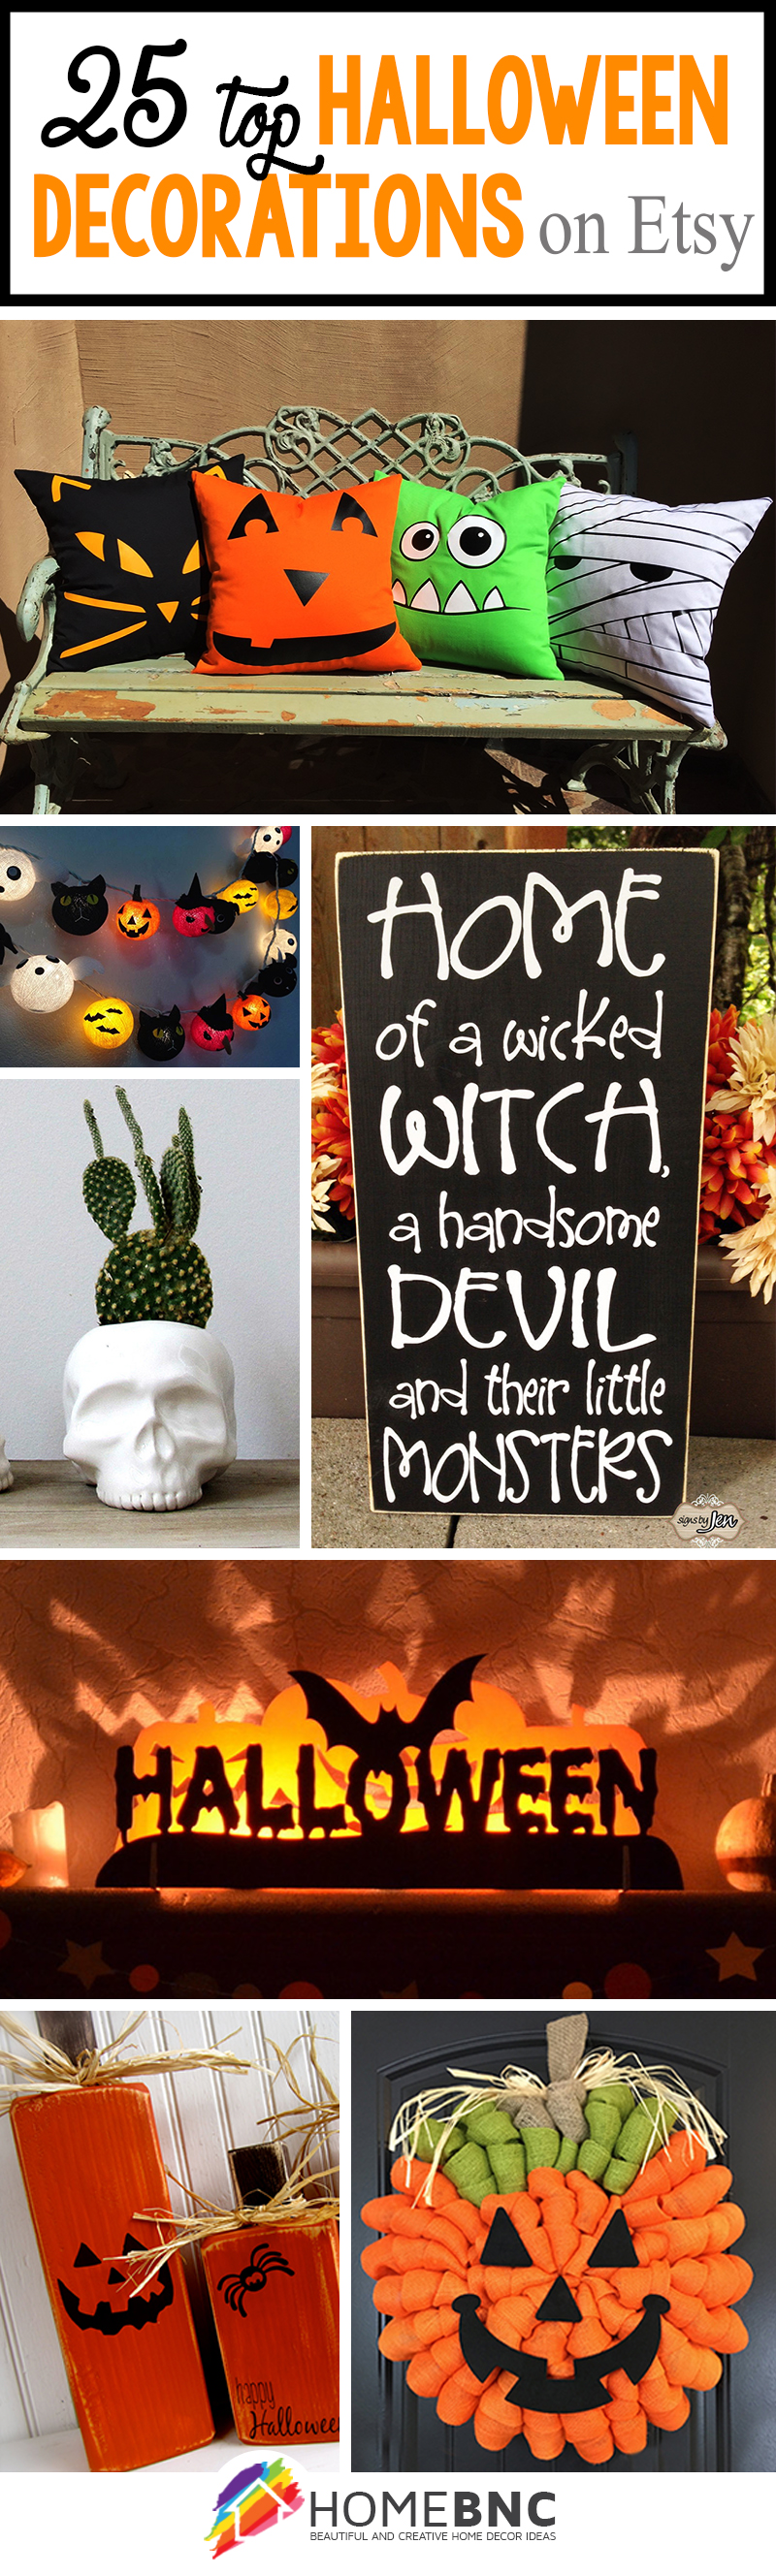 halloween dcor ideas - Etsy Halloween Decorations